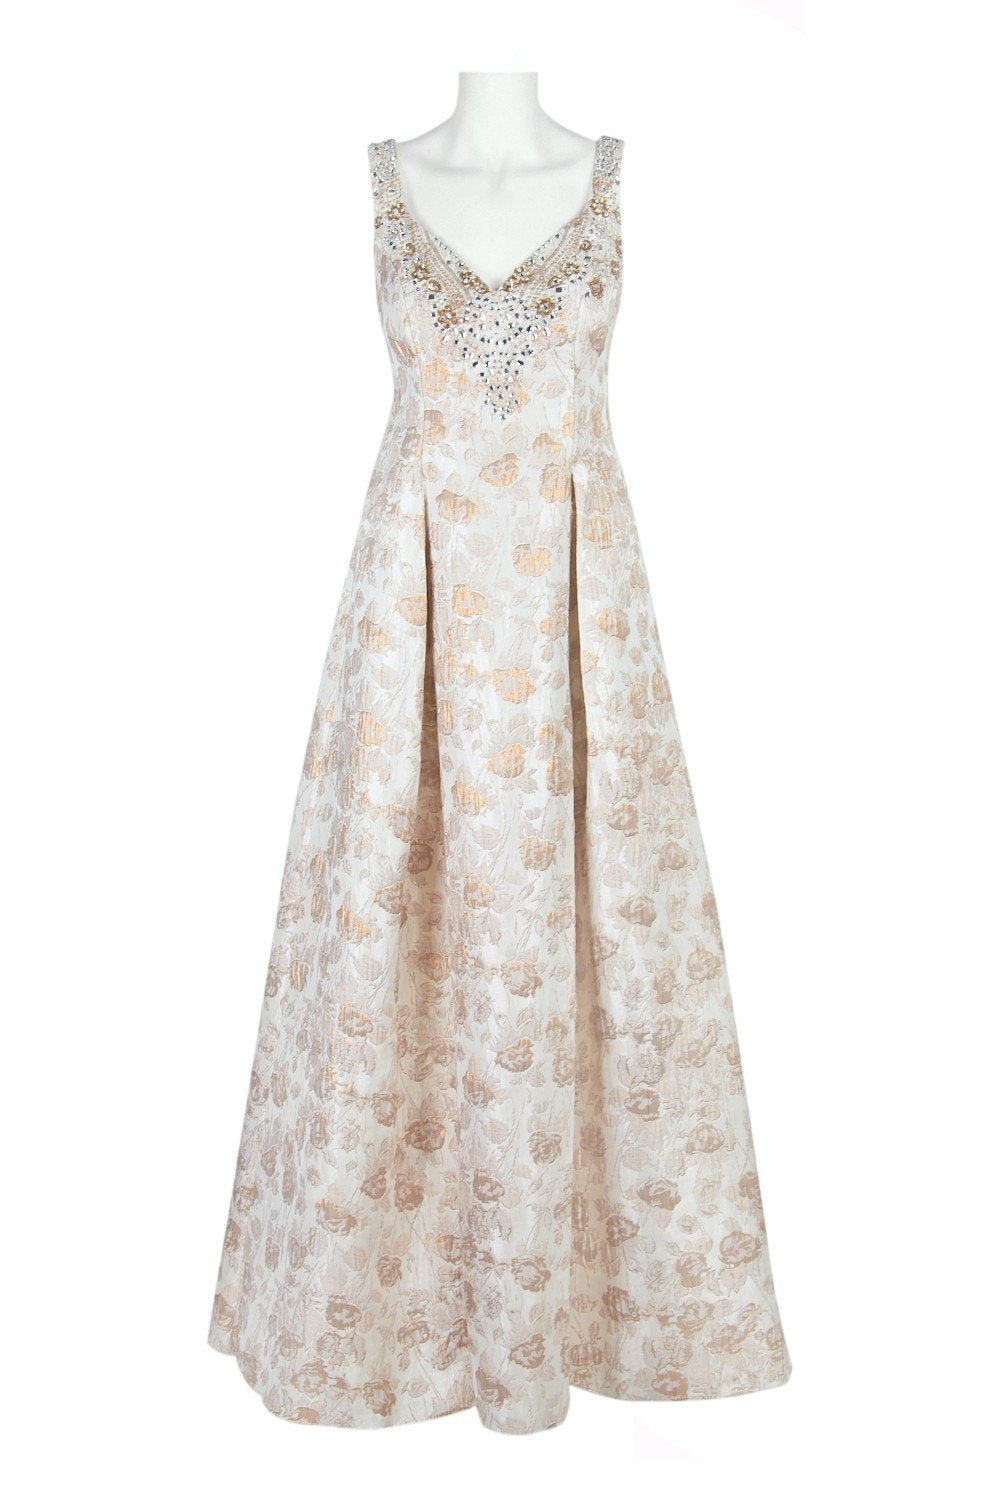 Aidan Mattox - MD1E201398 Embellished Sweetheart Jacquard A-line Dress In Gold